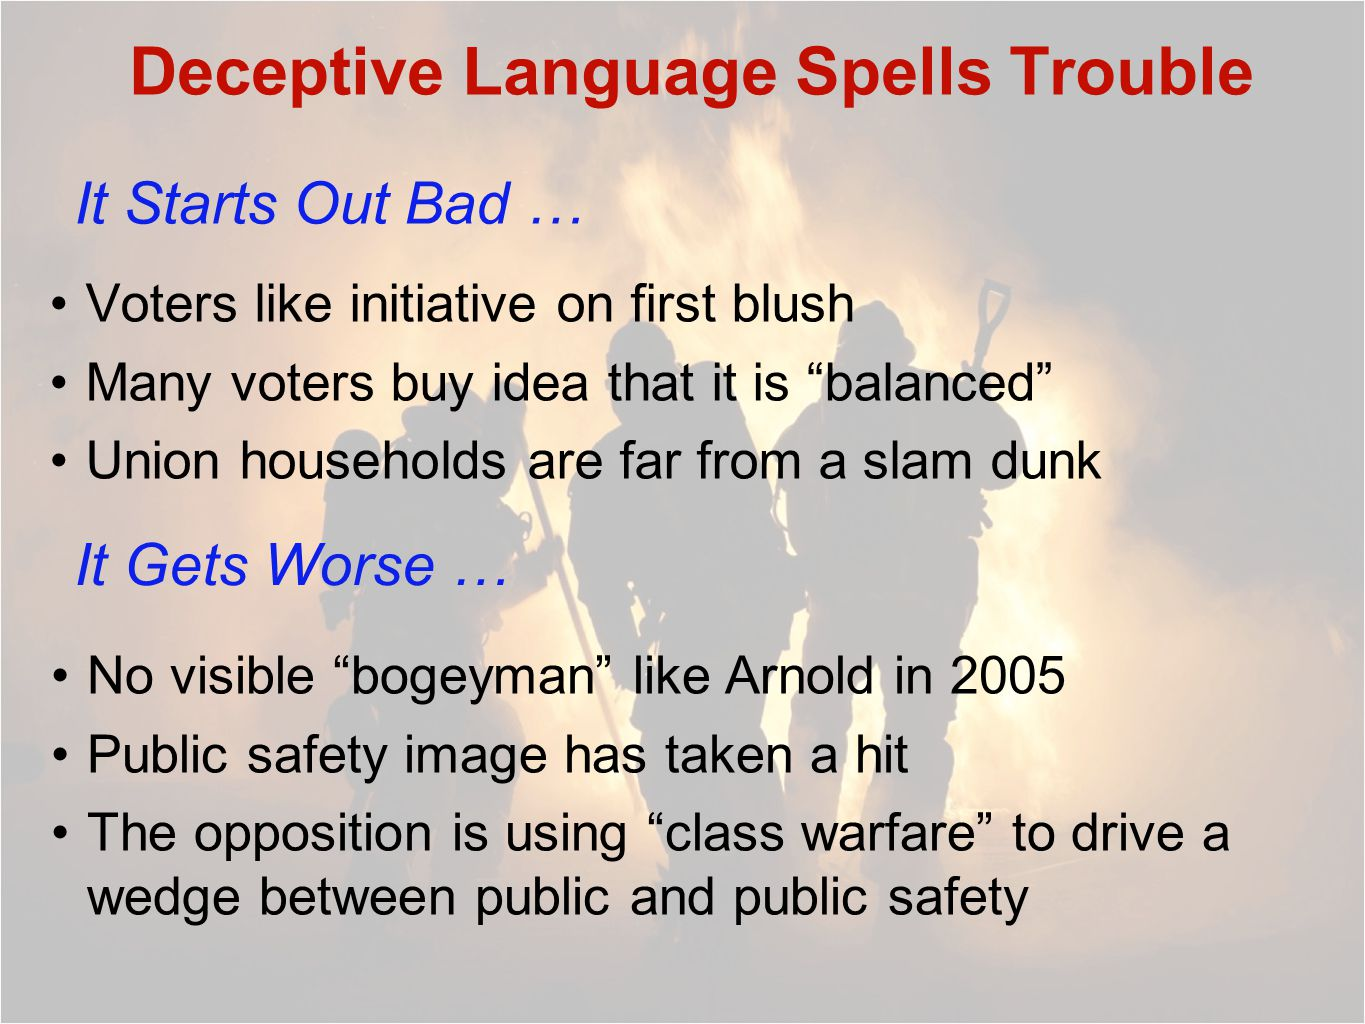 Deceptive Language Spells Trouble Voters like initiative on first blush Many voters buy idea that it is balanced Union households are far from a slam dunk It Starts Out Bad … It Gets Worse … No visible bogeyman like Arnold in 2005 Public safety image has taken a hit The opposition is using class warfare to drive a wedge between public and public safety